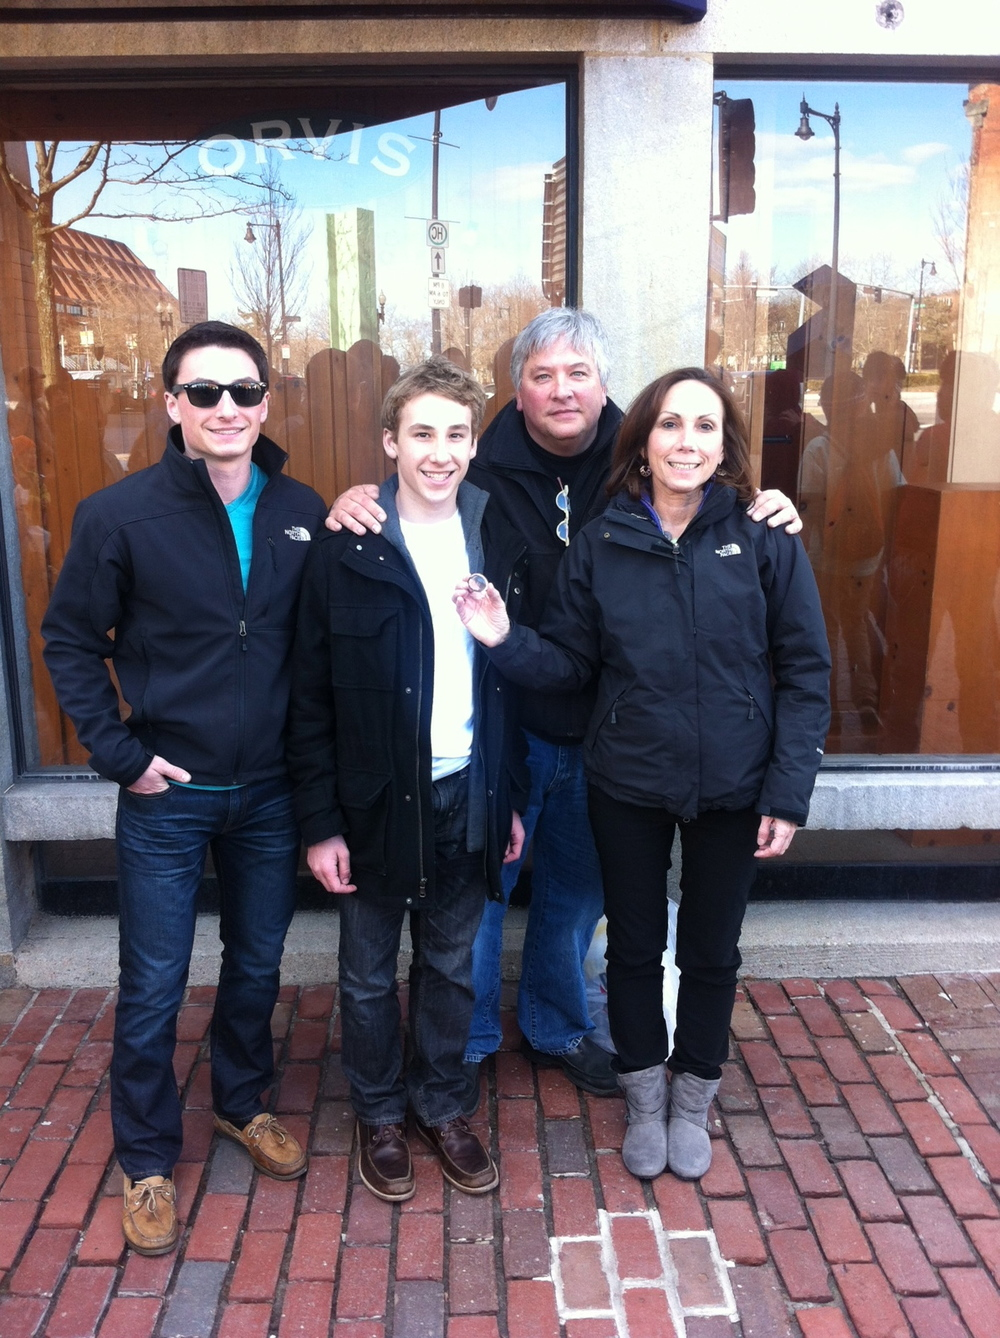 Lila at Quincy Market in Boston with the Kocan's